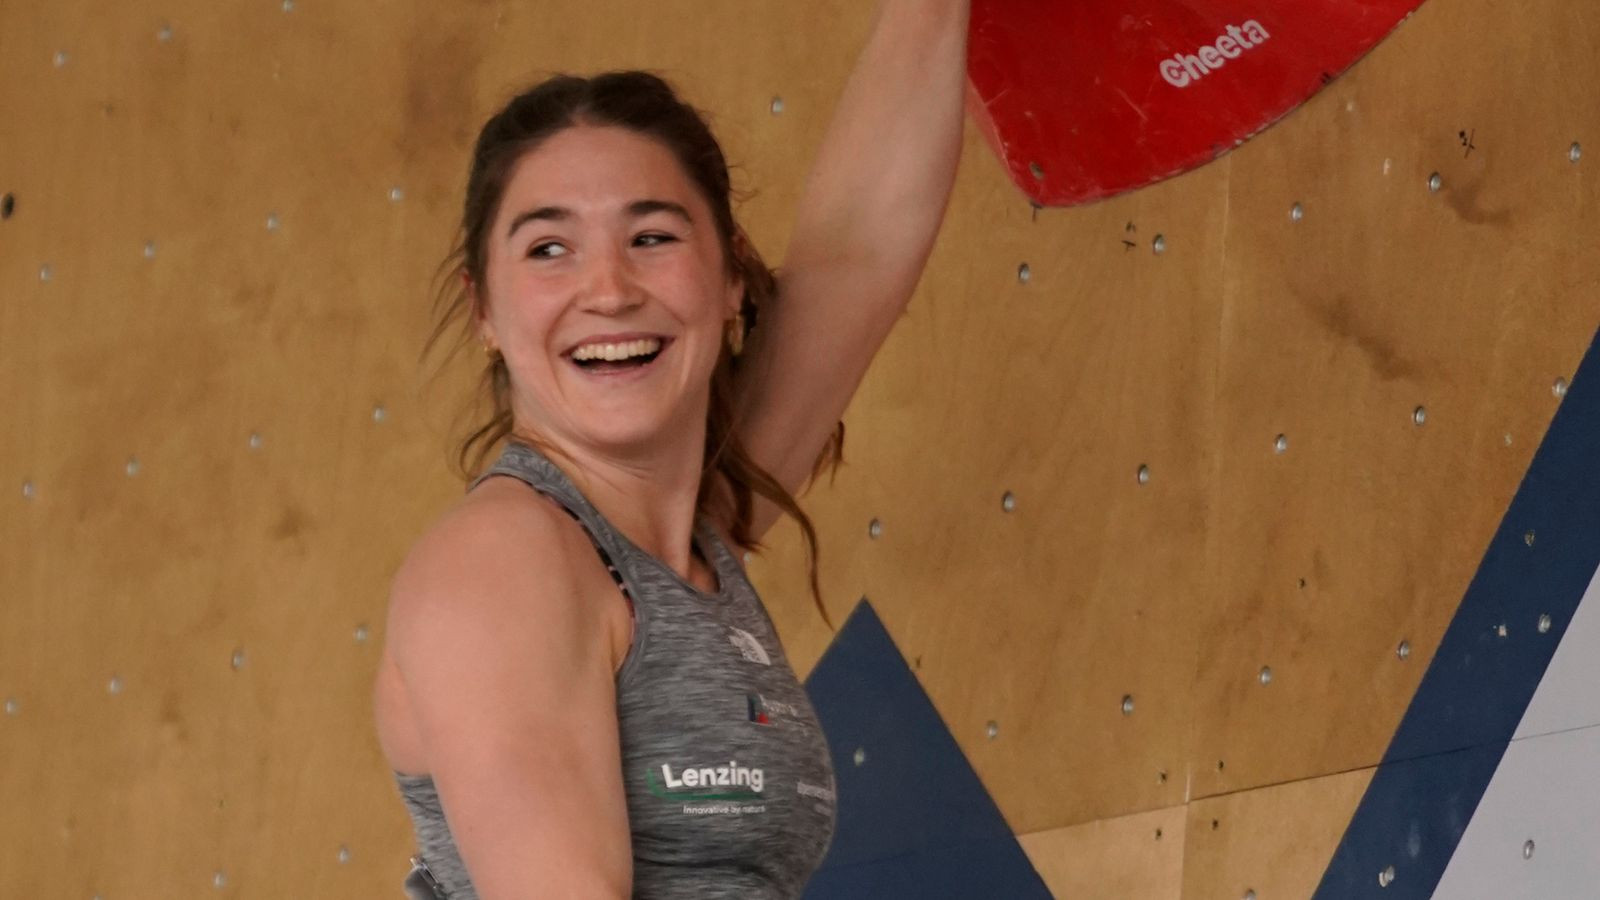 Organisers apologise to climber after broadcaster's close-up replay of athlete's bottom